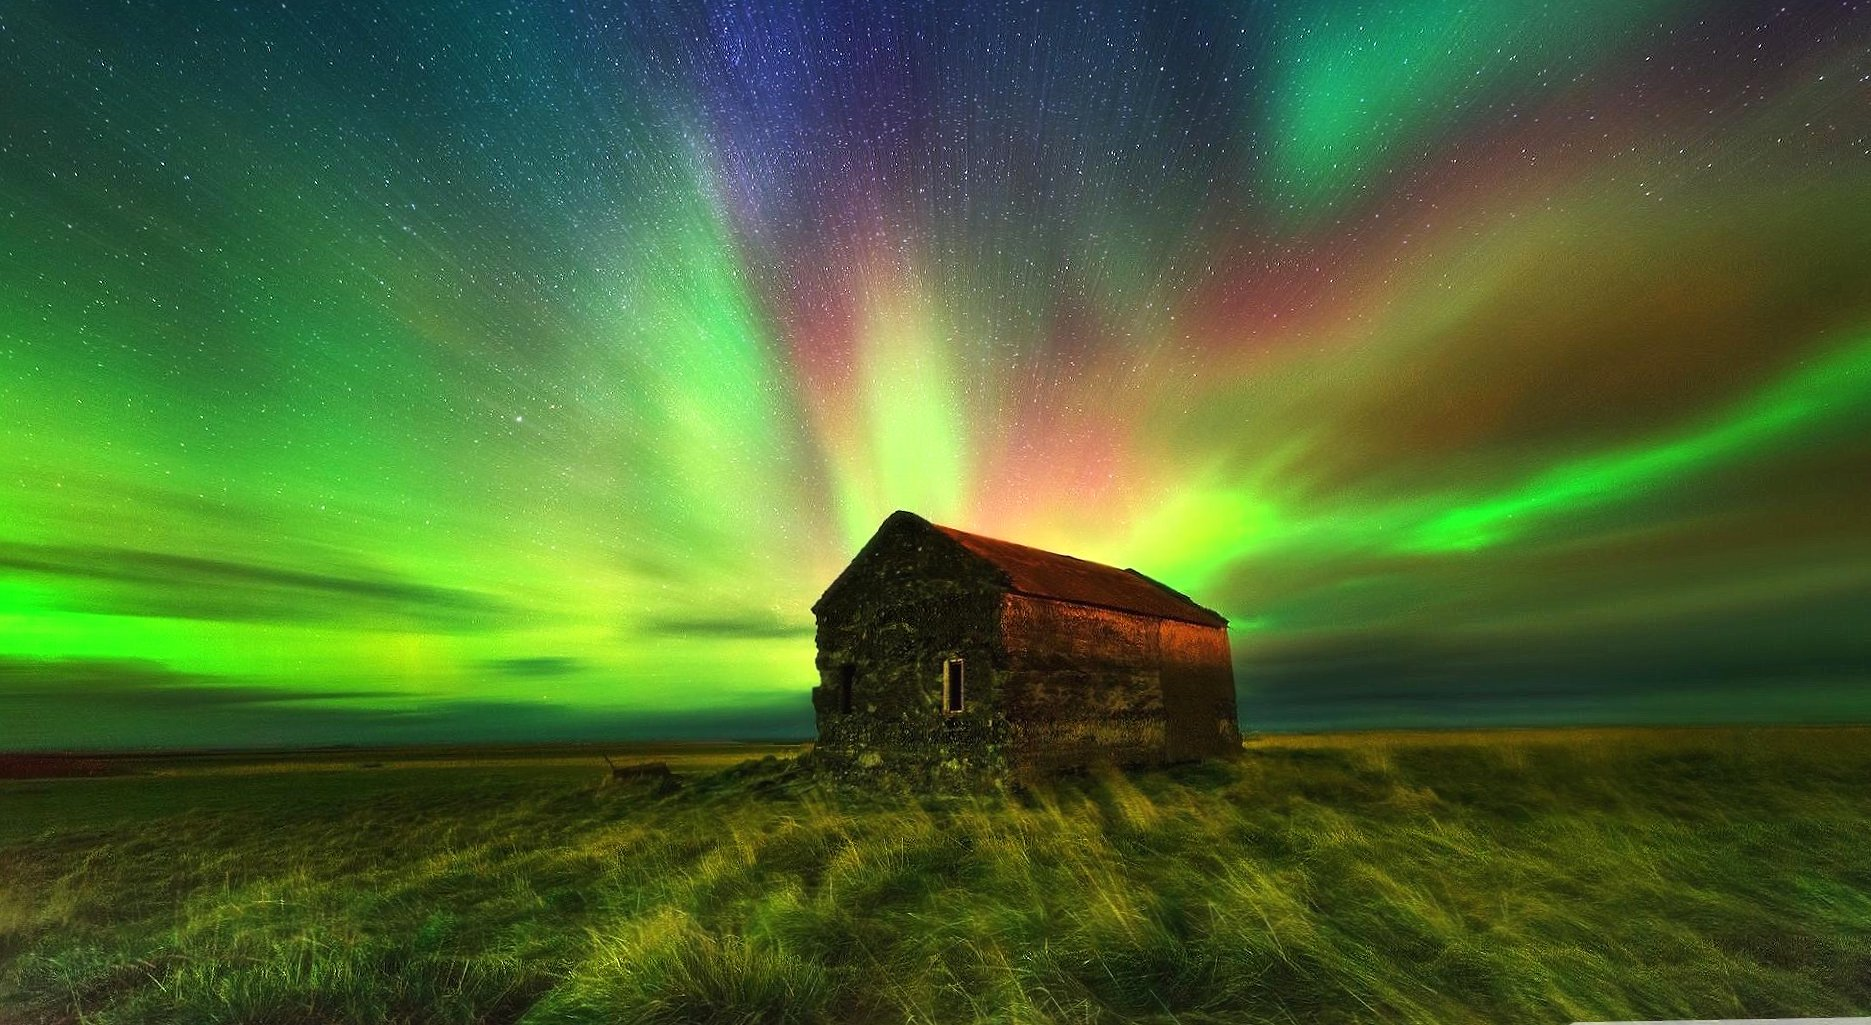 Aurora and house wallpapers HD quality